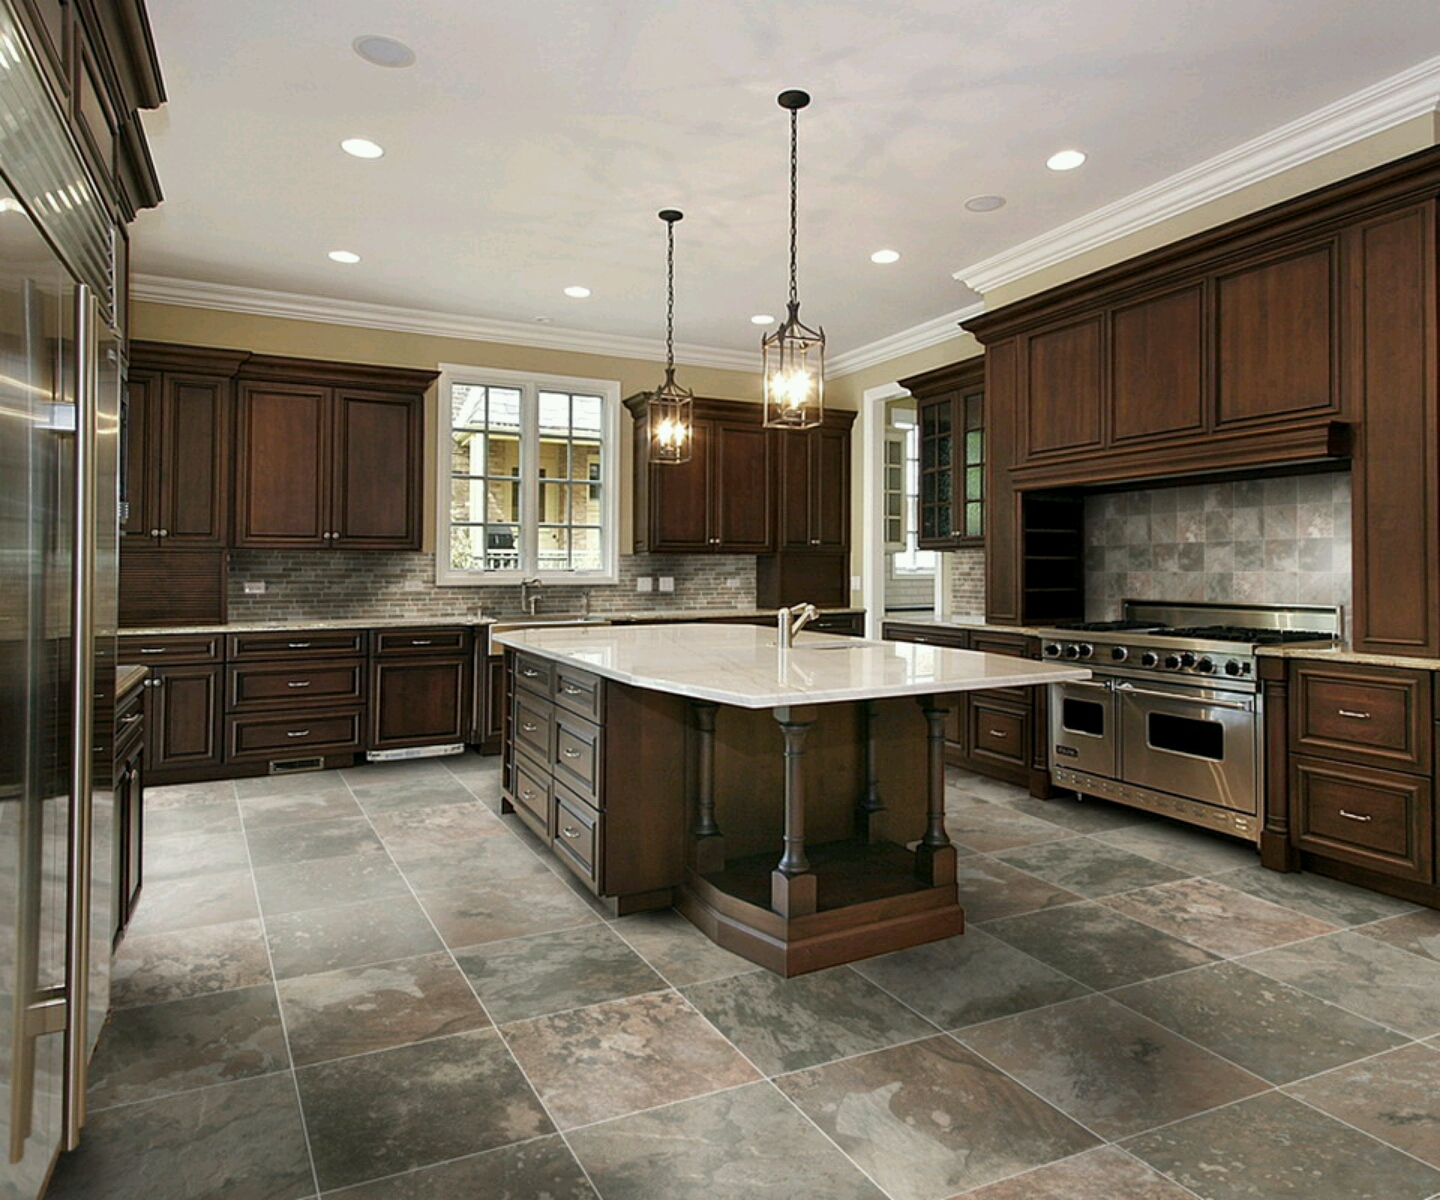 Kitchen Floor Remodel Ideas: New Home Designs Latest.: Modern Kitchen Designs Ideas